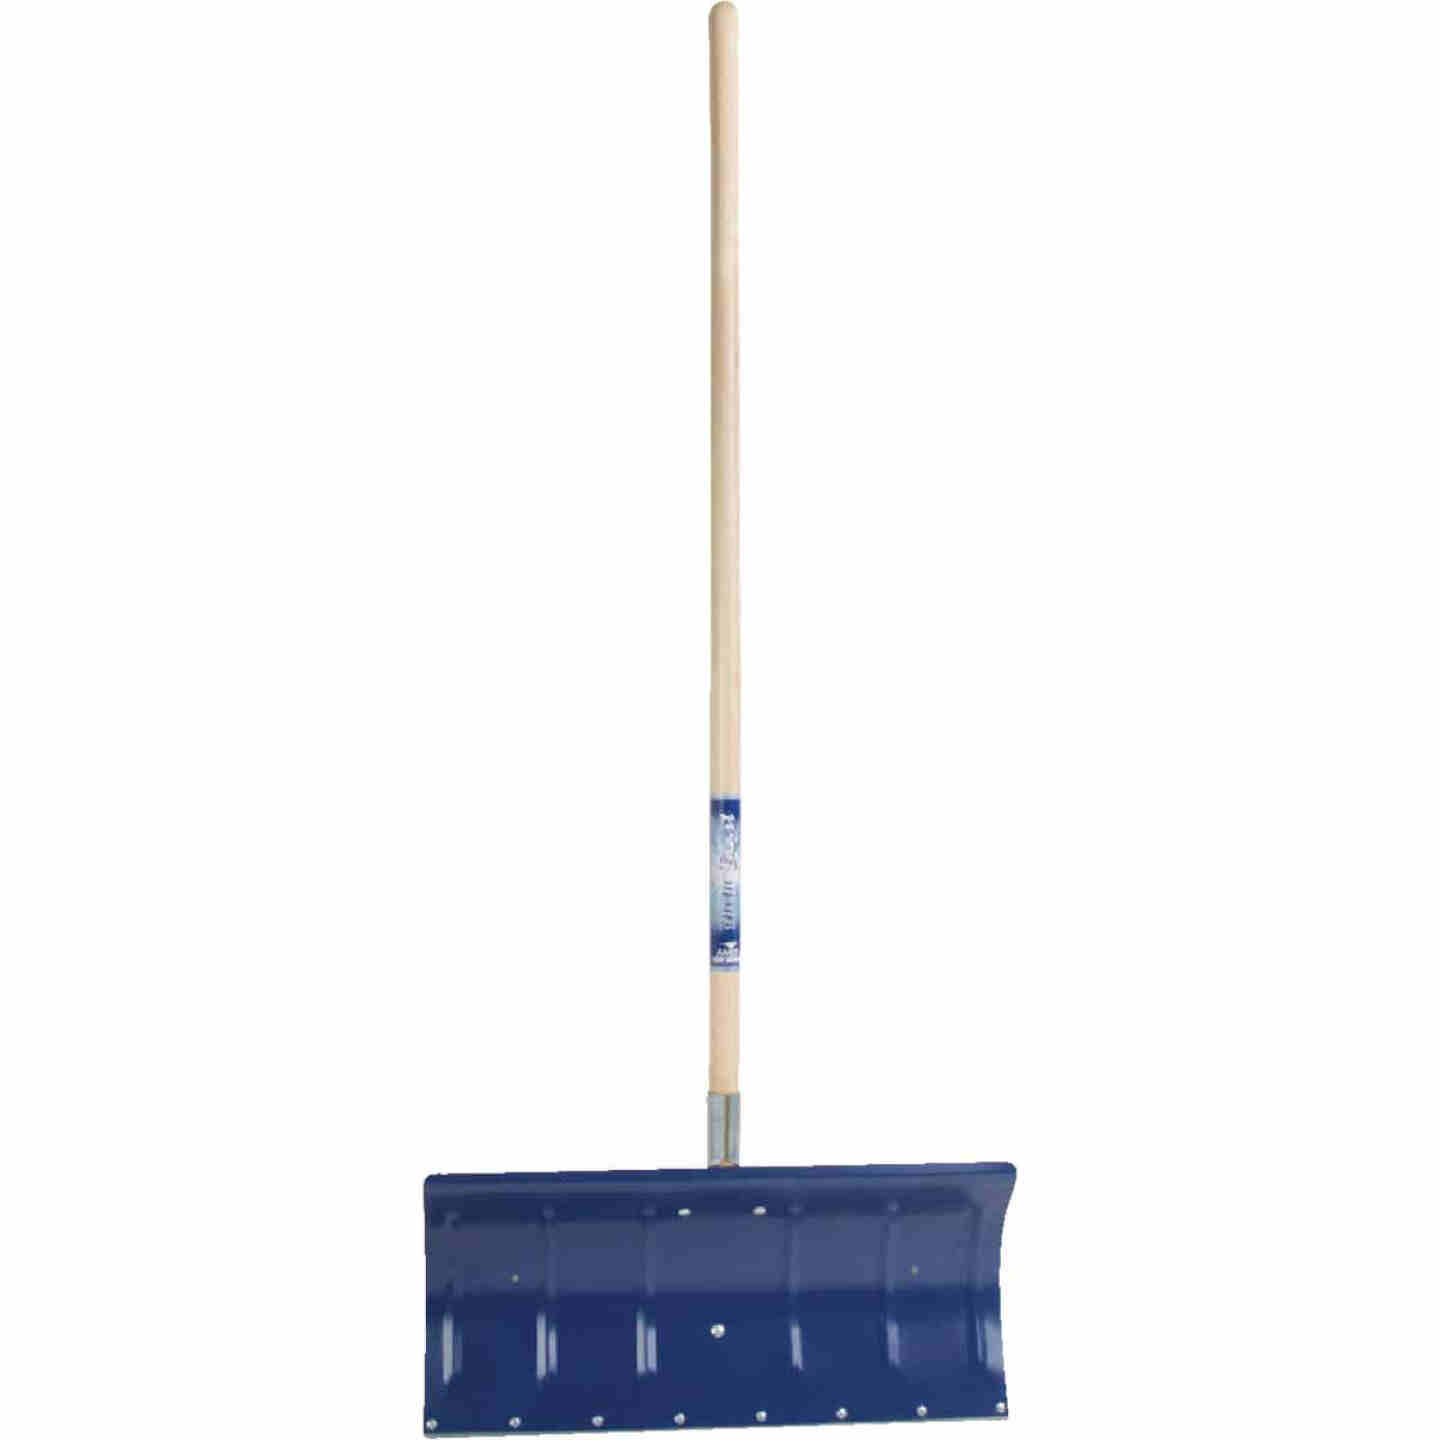 True Temper 24 In. Aluminum Snow Pusher with 48 In. Wood Handle Image 2